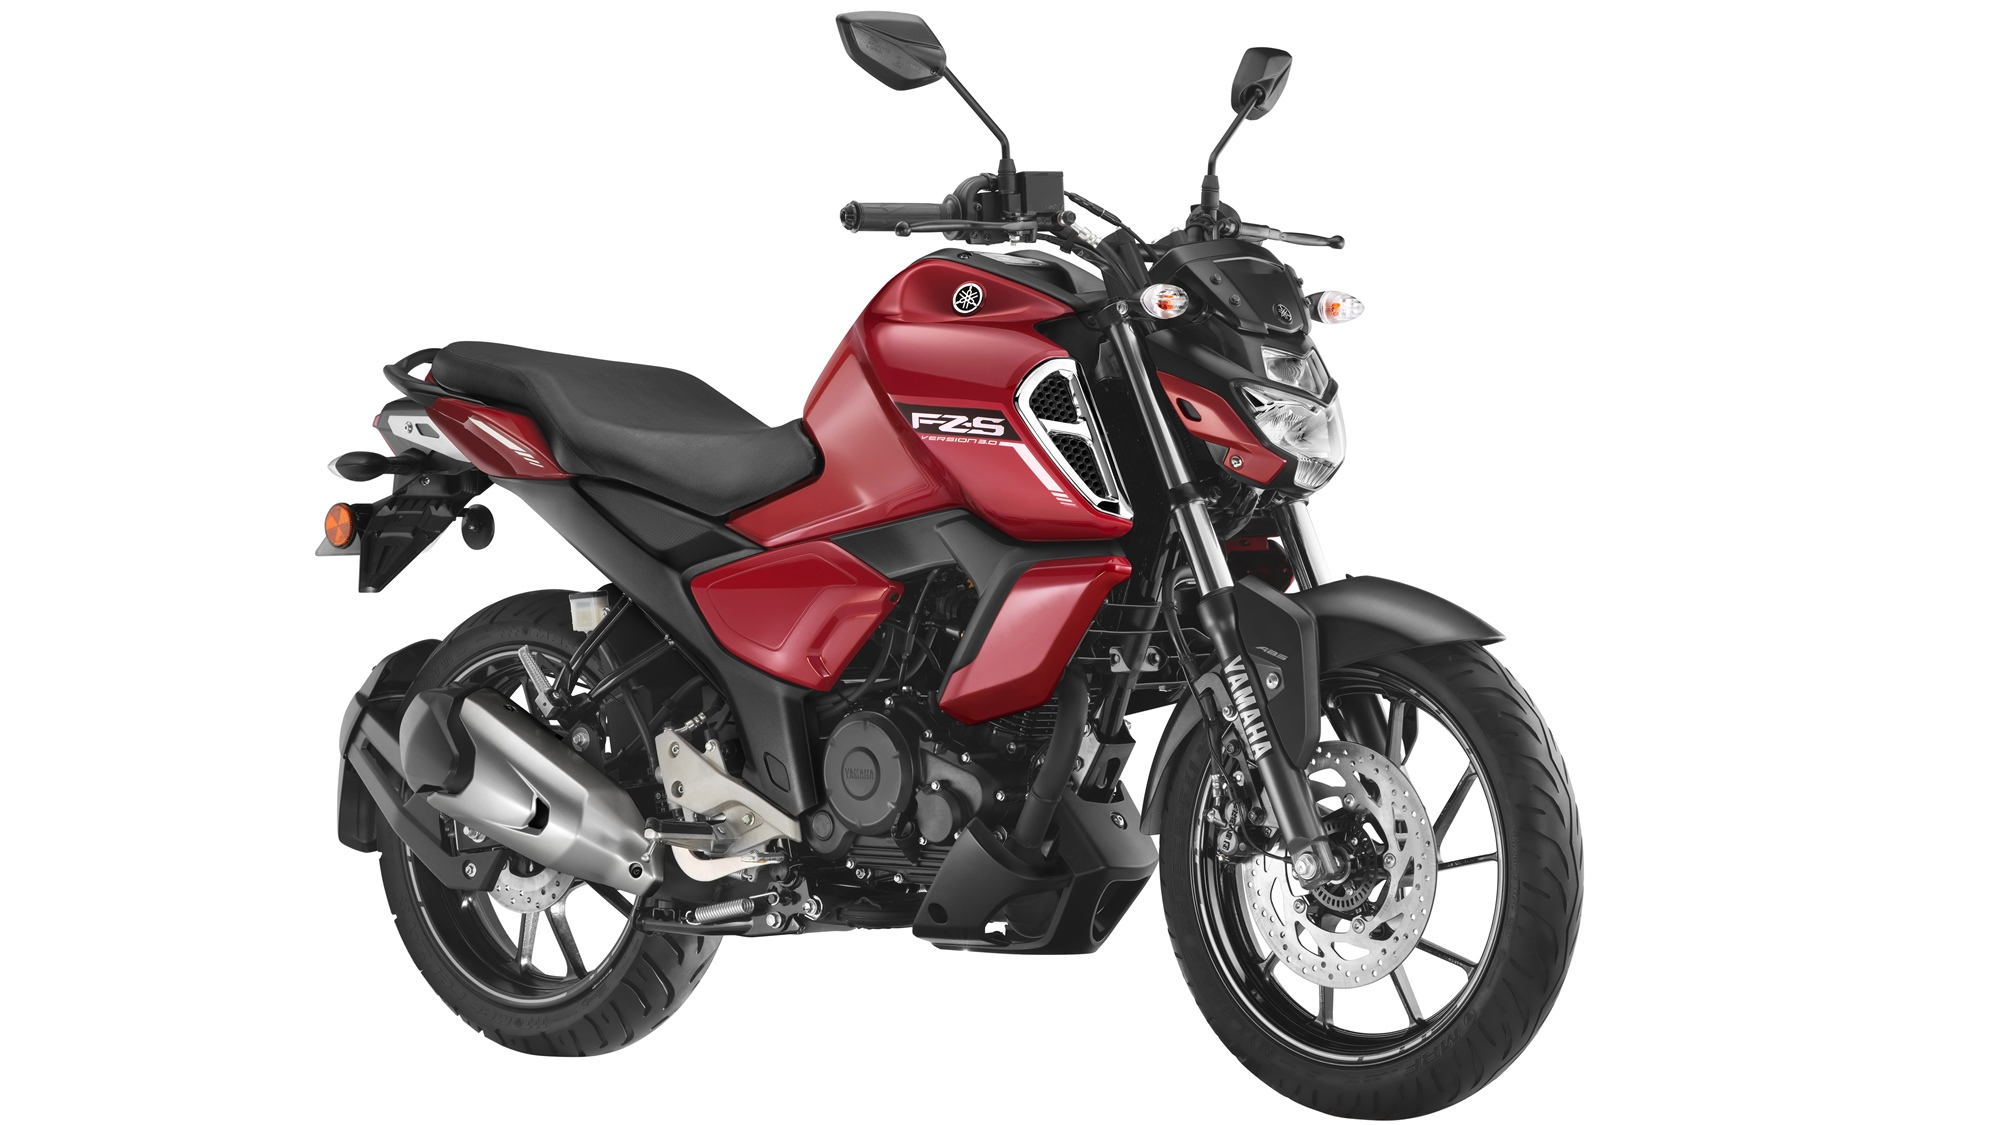 Yamaha FZ-Fi - FZS-Fi V3 BS 6 version - red colour option